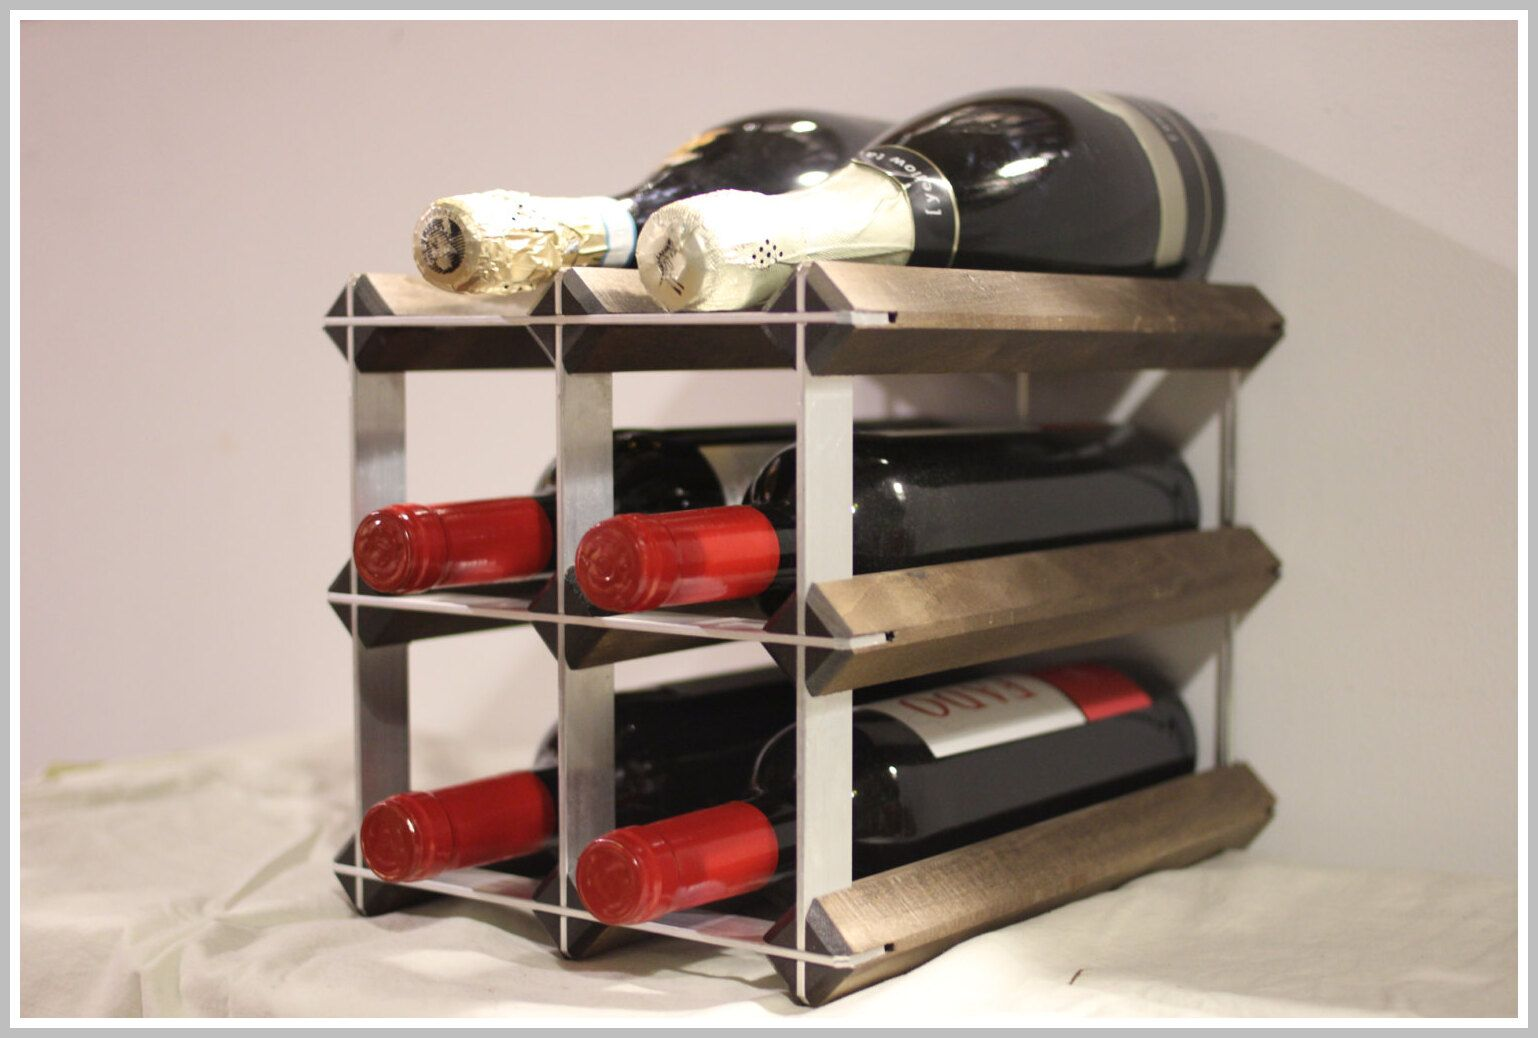 32 Reference Of Modern Wine Rack Countertop In 2020 Modern Wine Rack Countertop Wine Rack Wine Rack